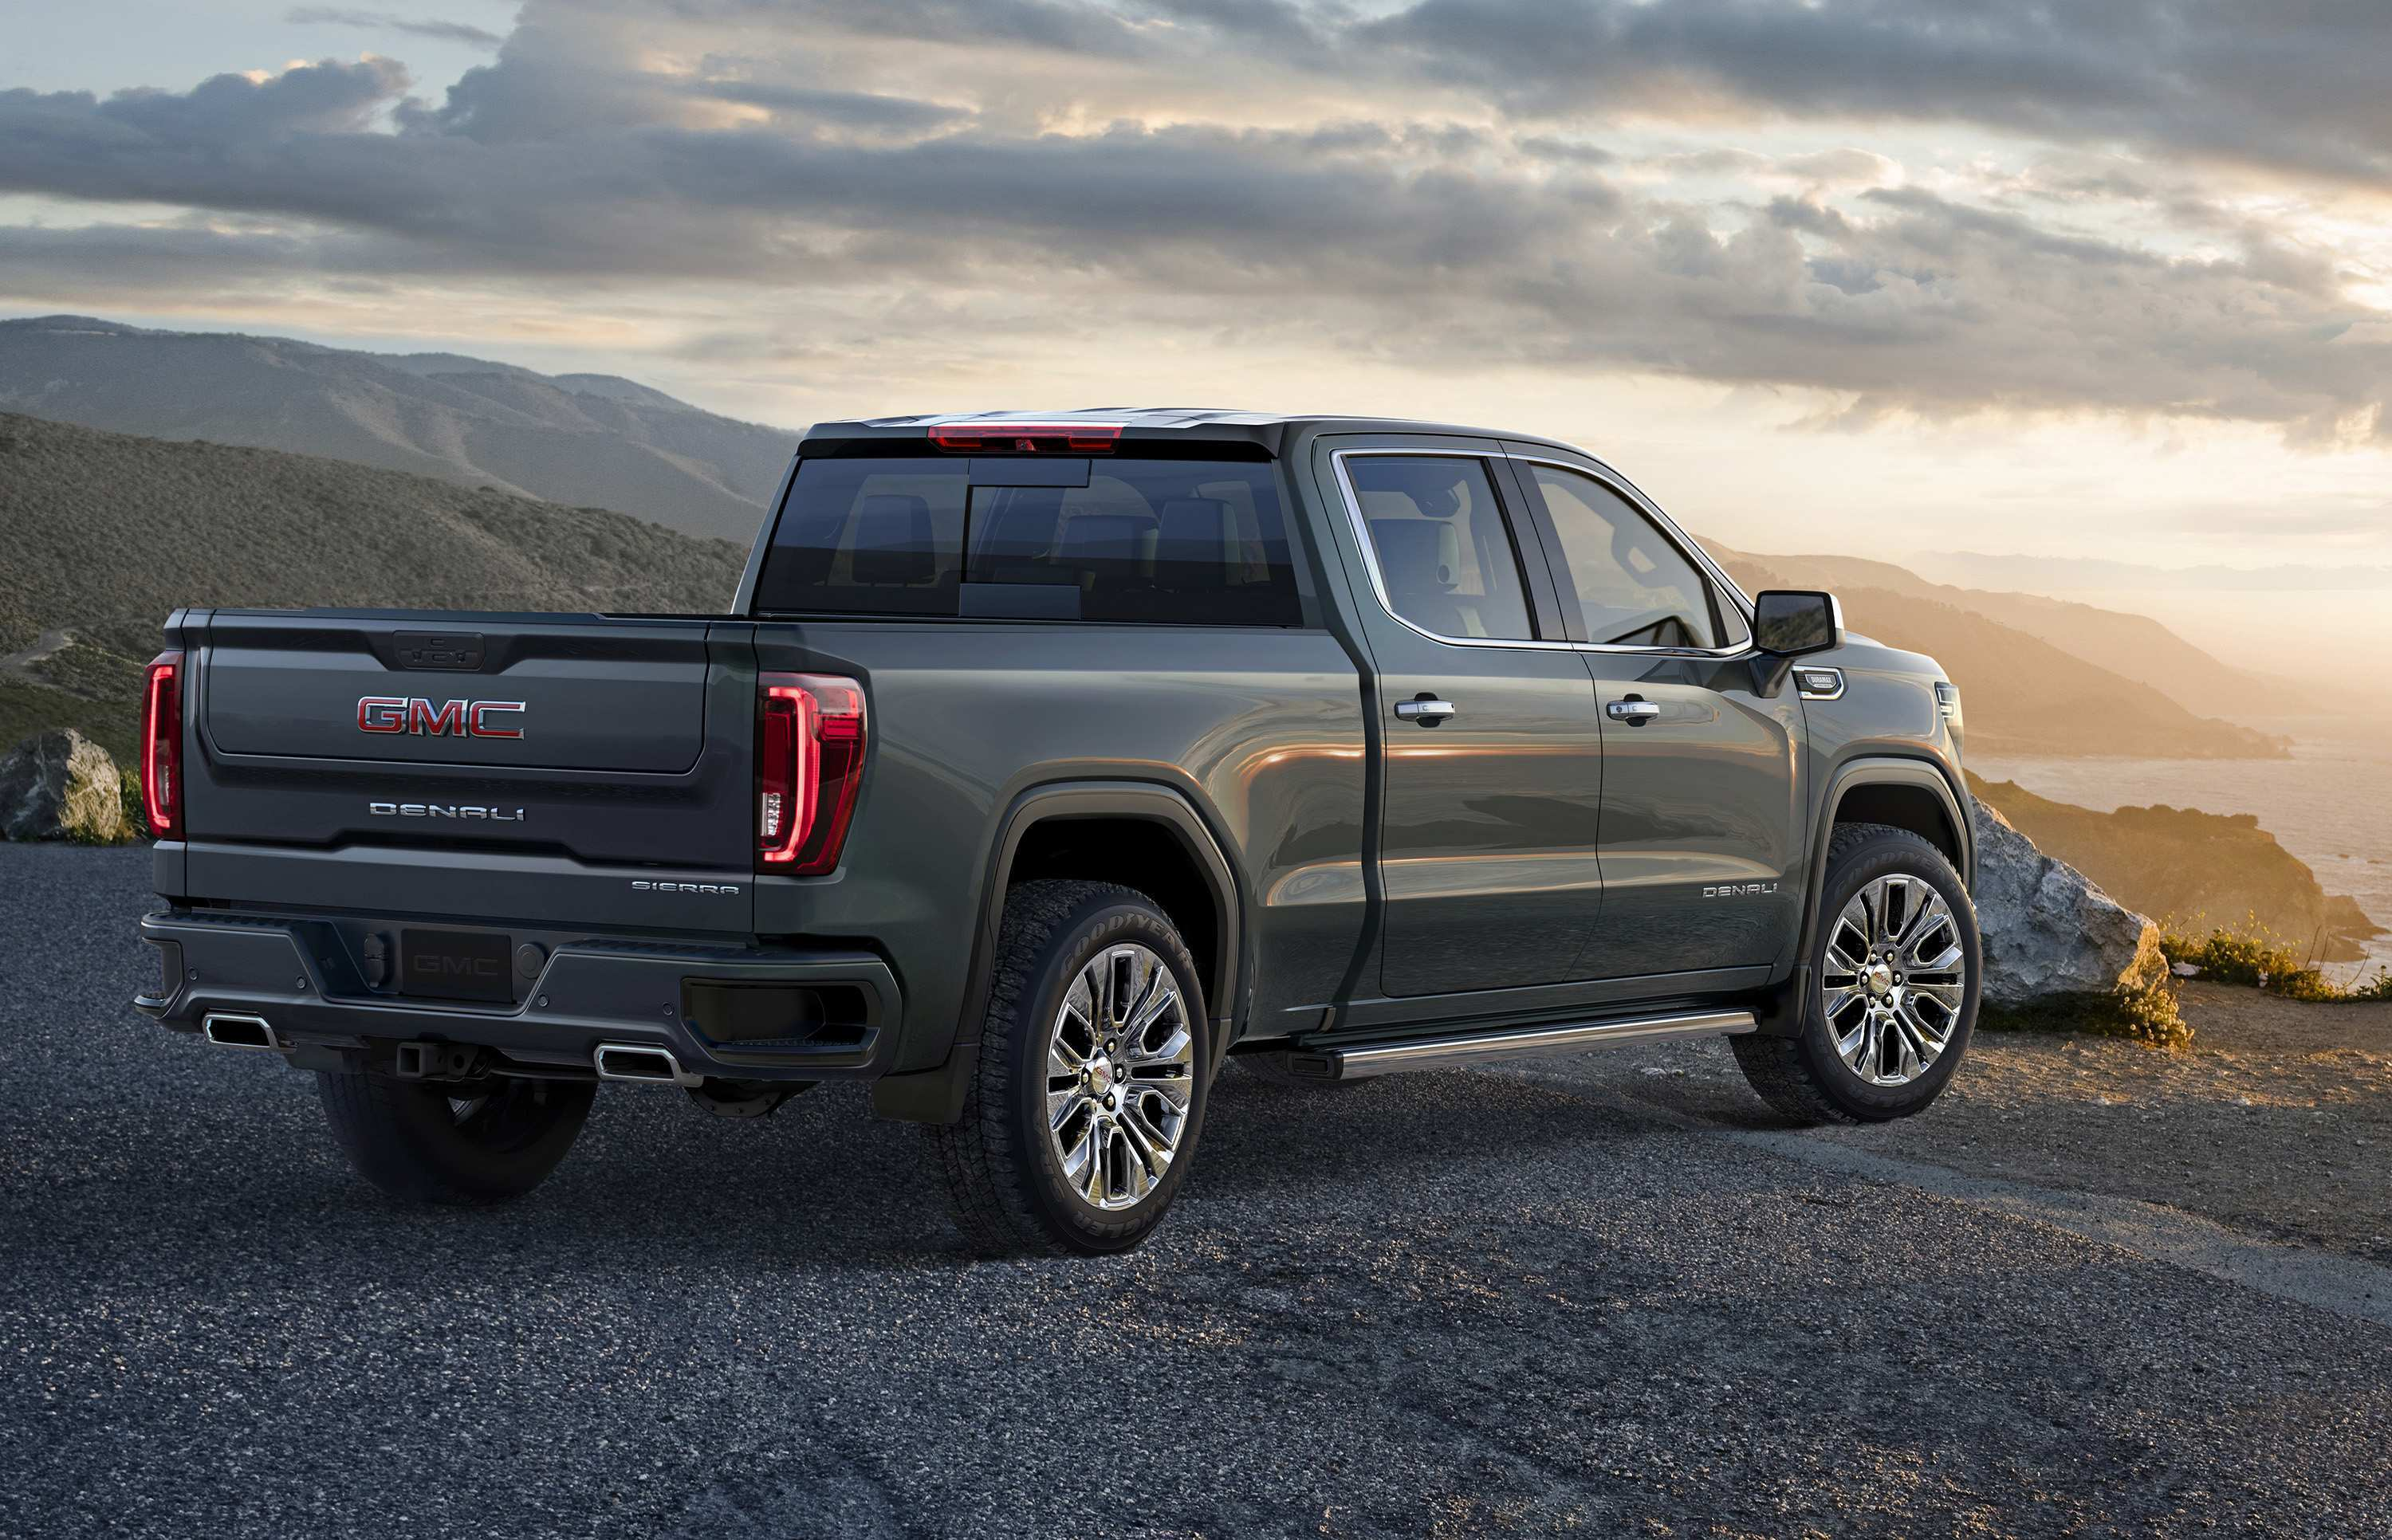 16 Concept of 2019 Gmc Sierra Images Speed Test for 2019 Gmc Sierra Images